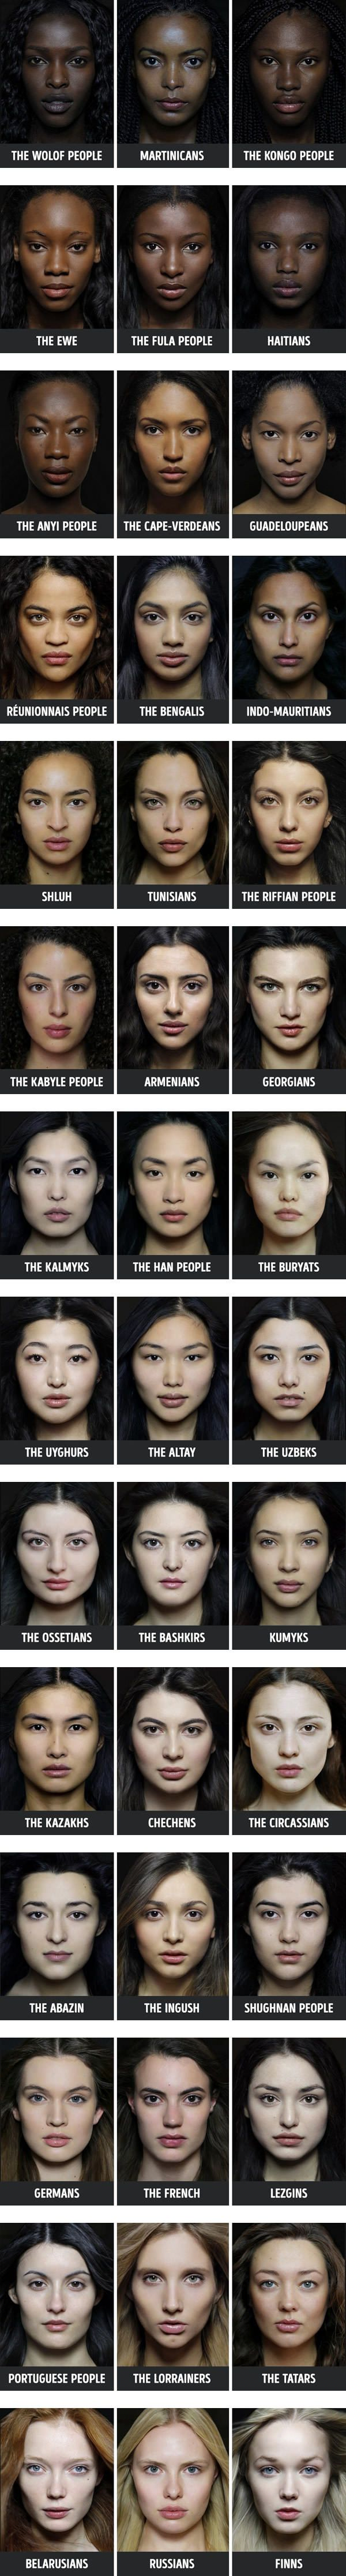 After overlaying thousands of portraits by ethnicity this artist rendered them into single people to better understand facial similarities and differences.